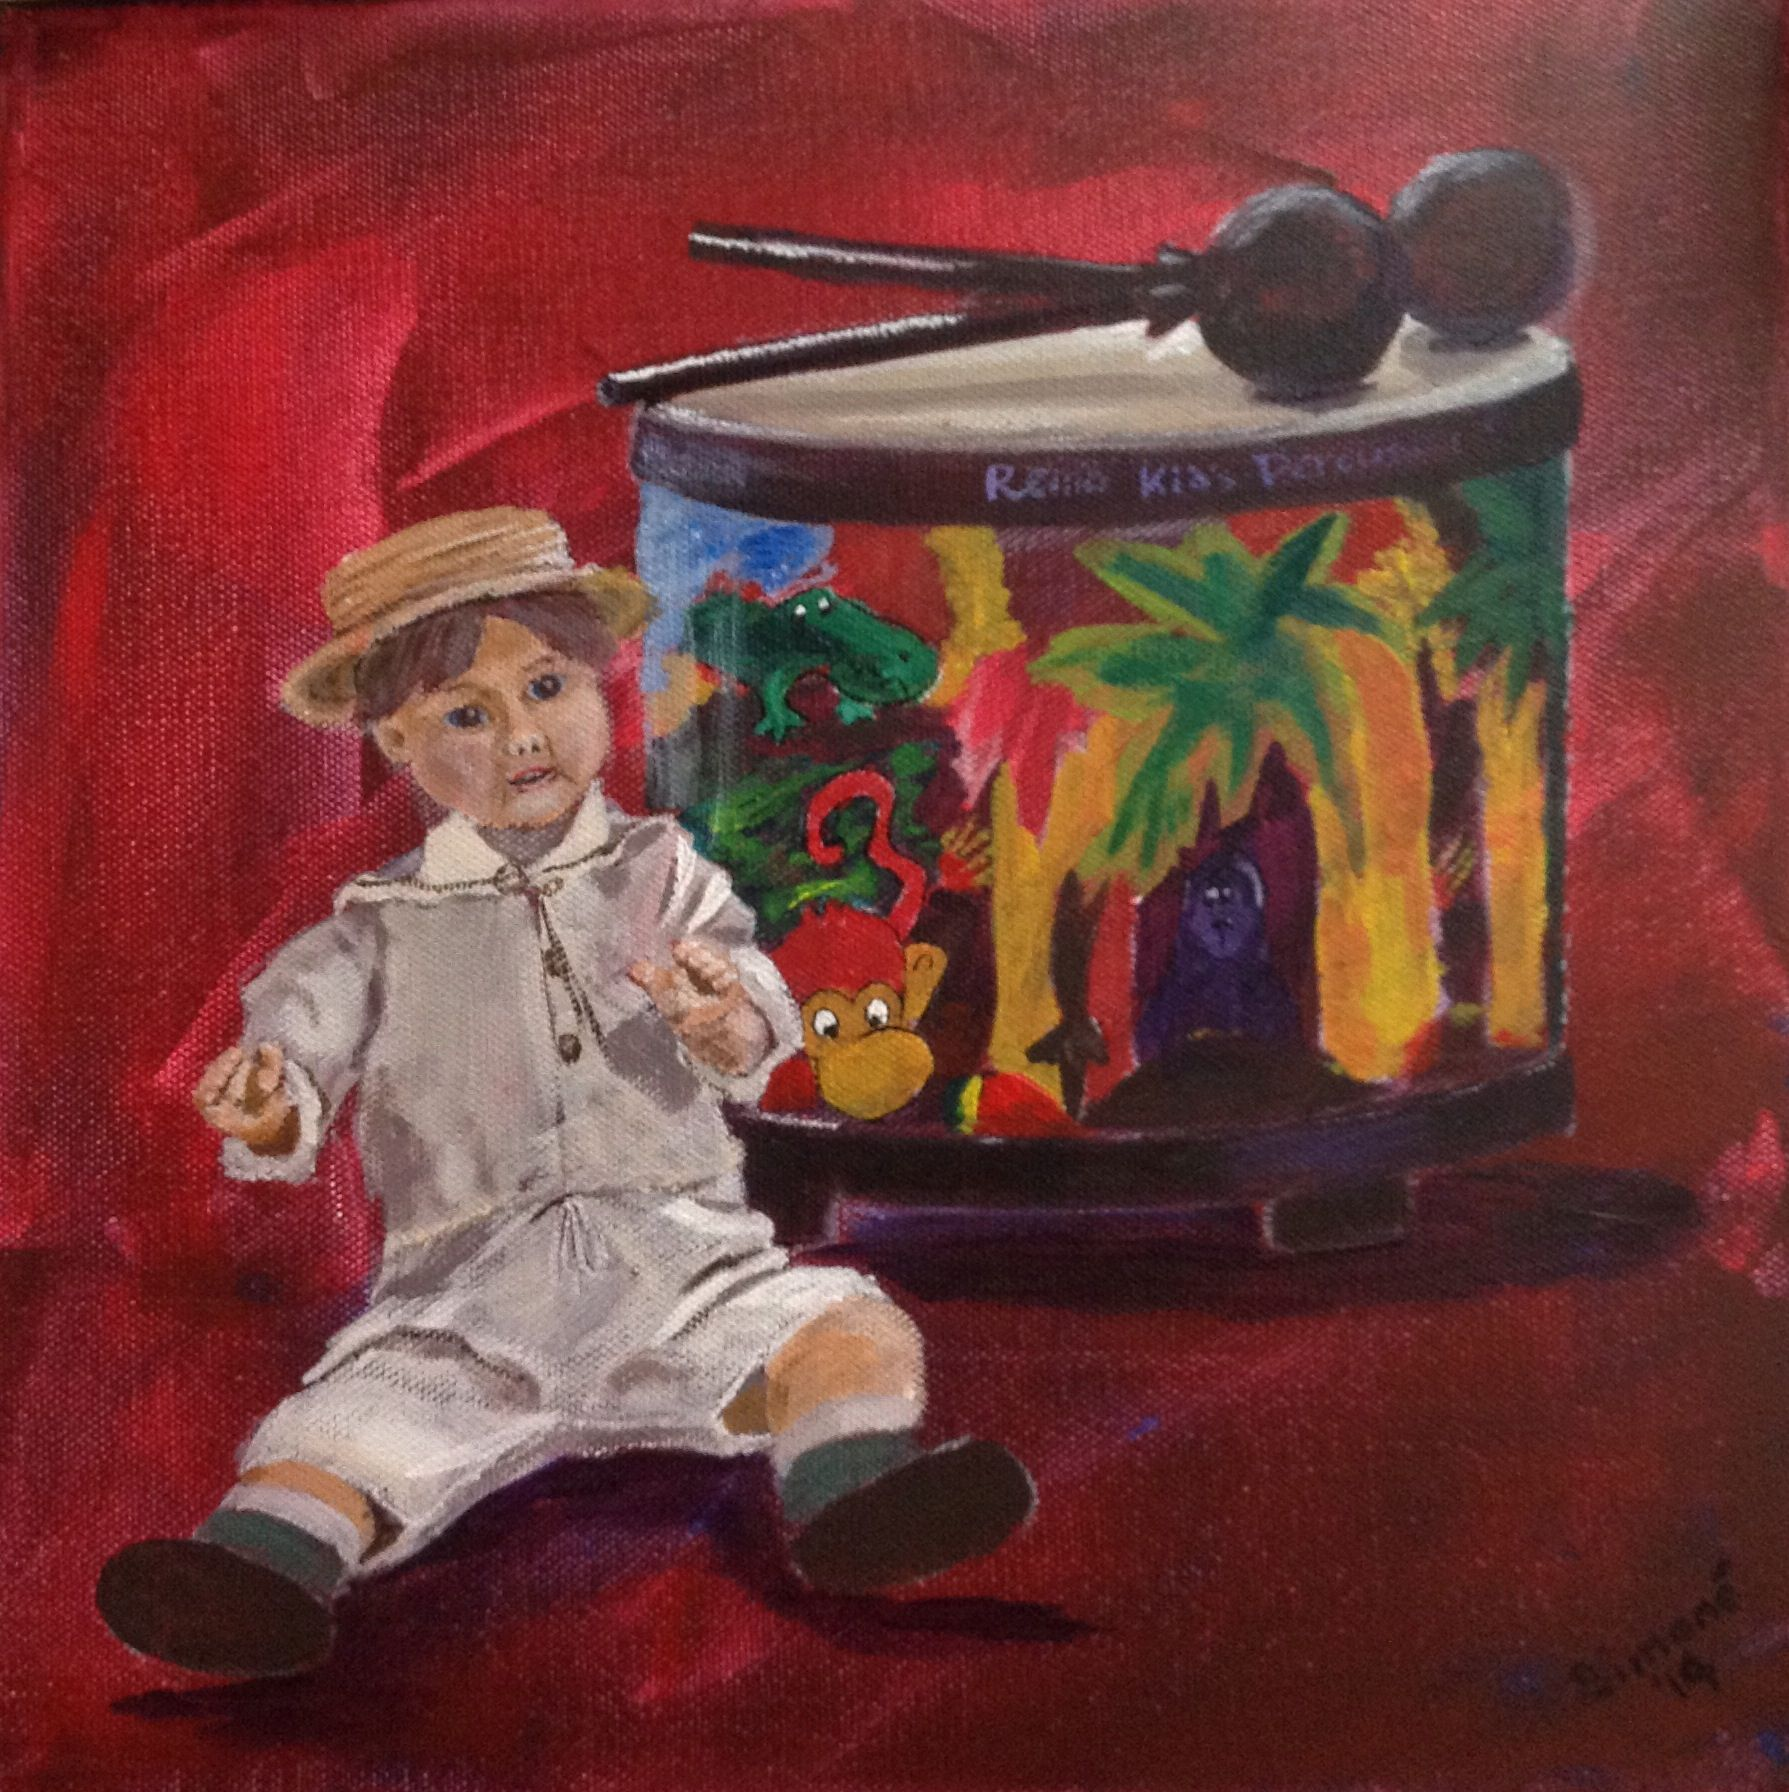 Doll and drum, still life